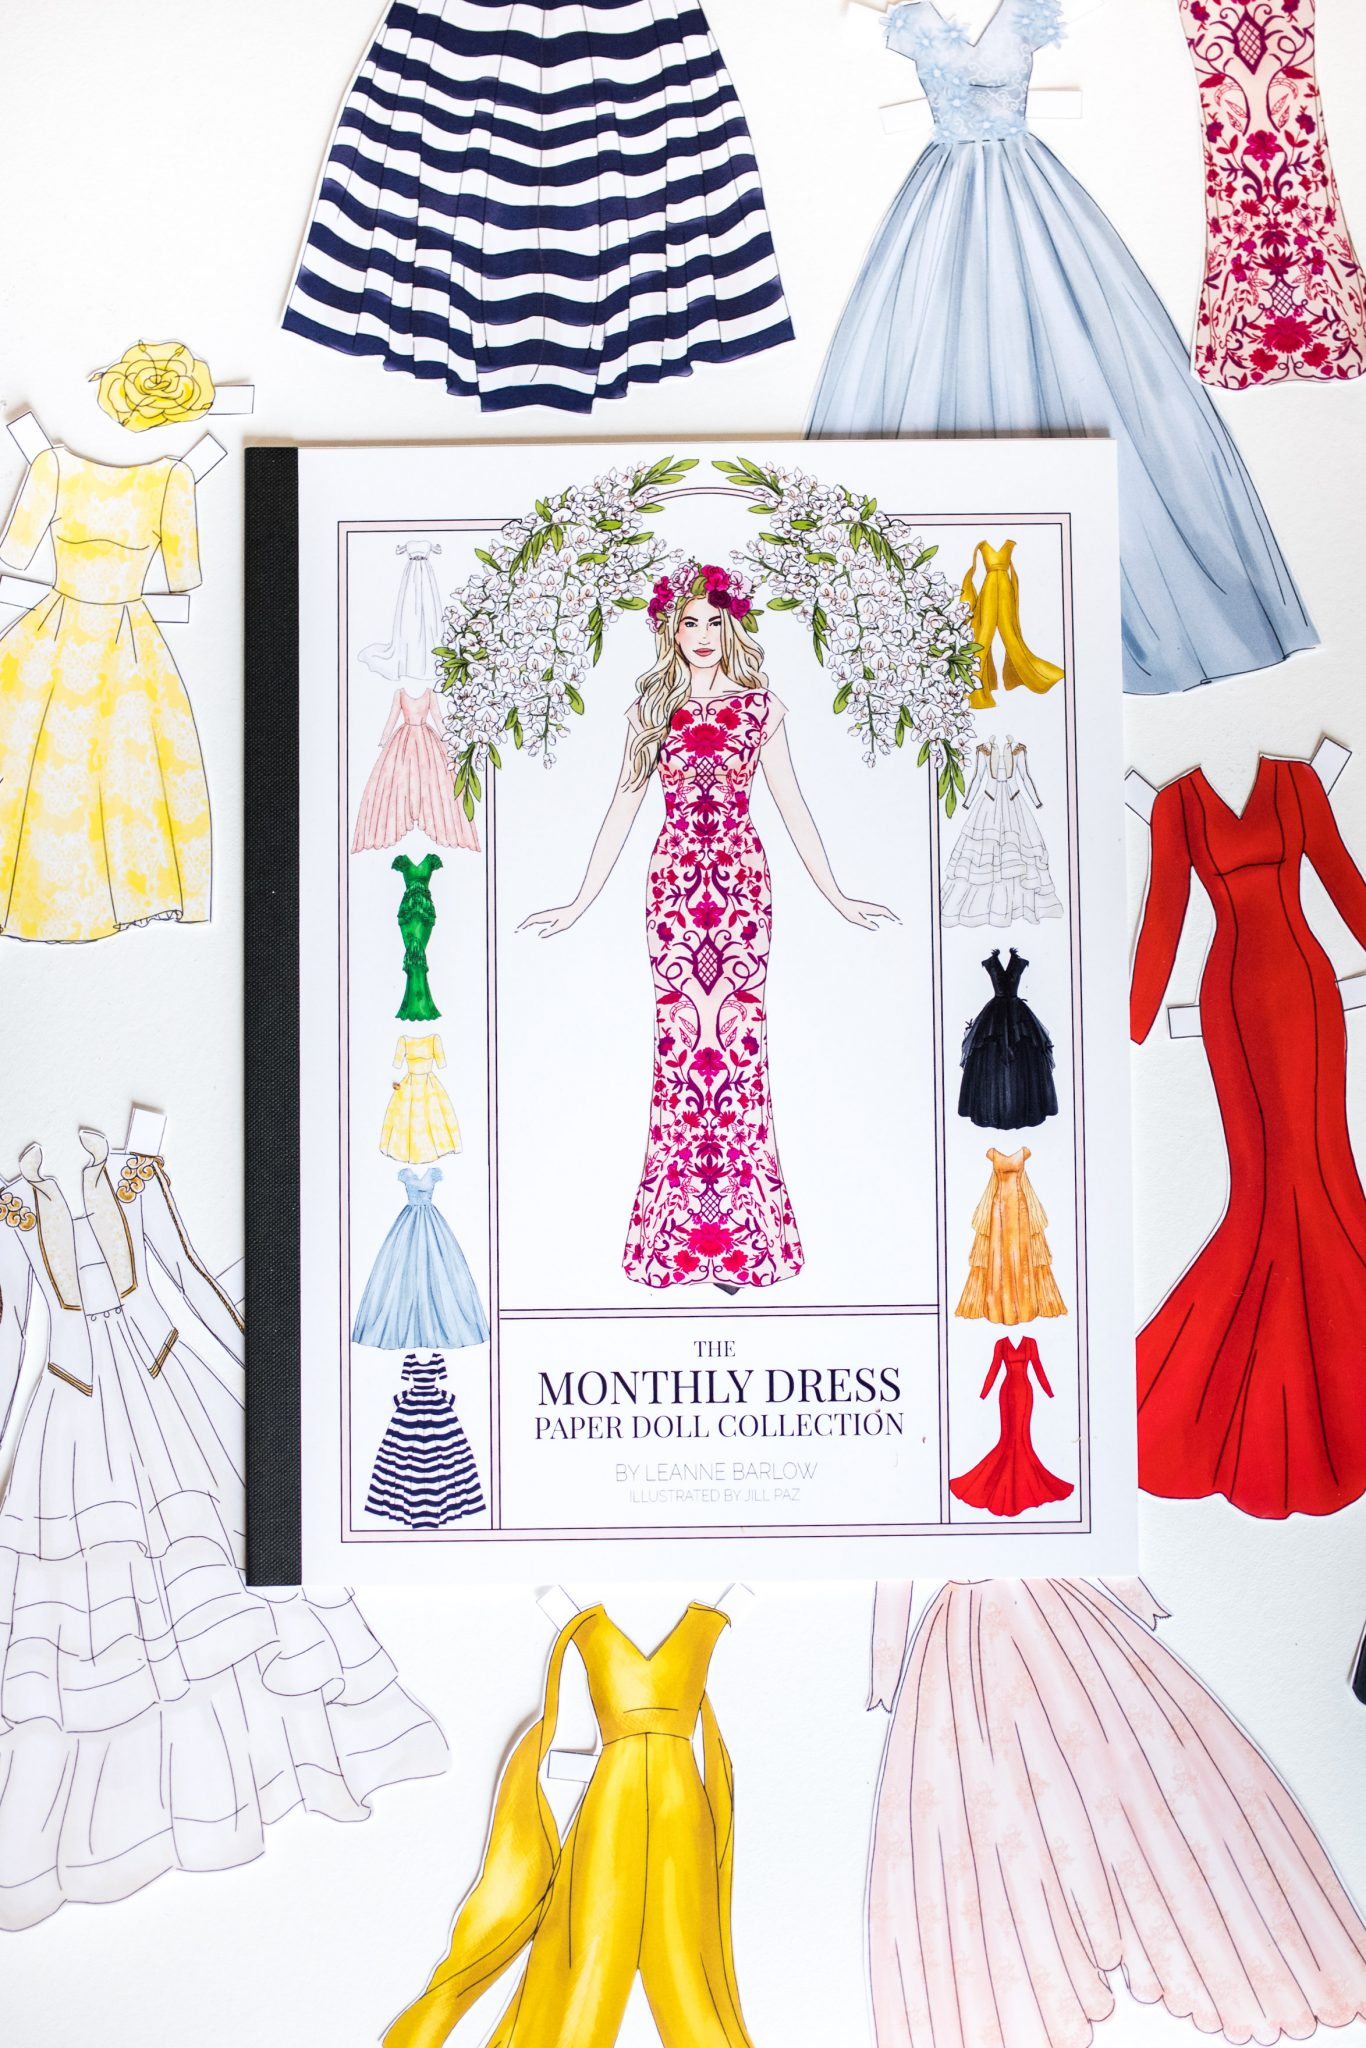 The Monthly Dress Paper Dolls by Leanne Barlow